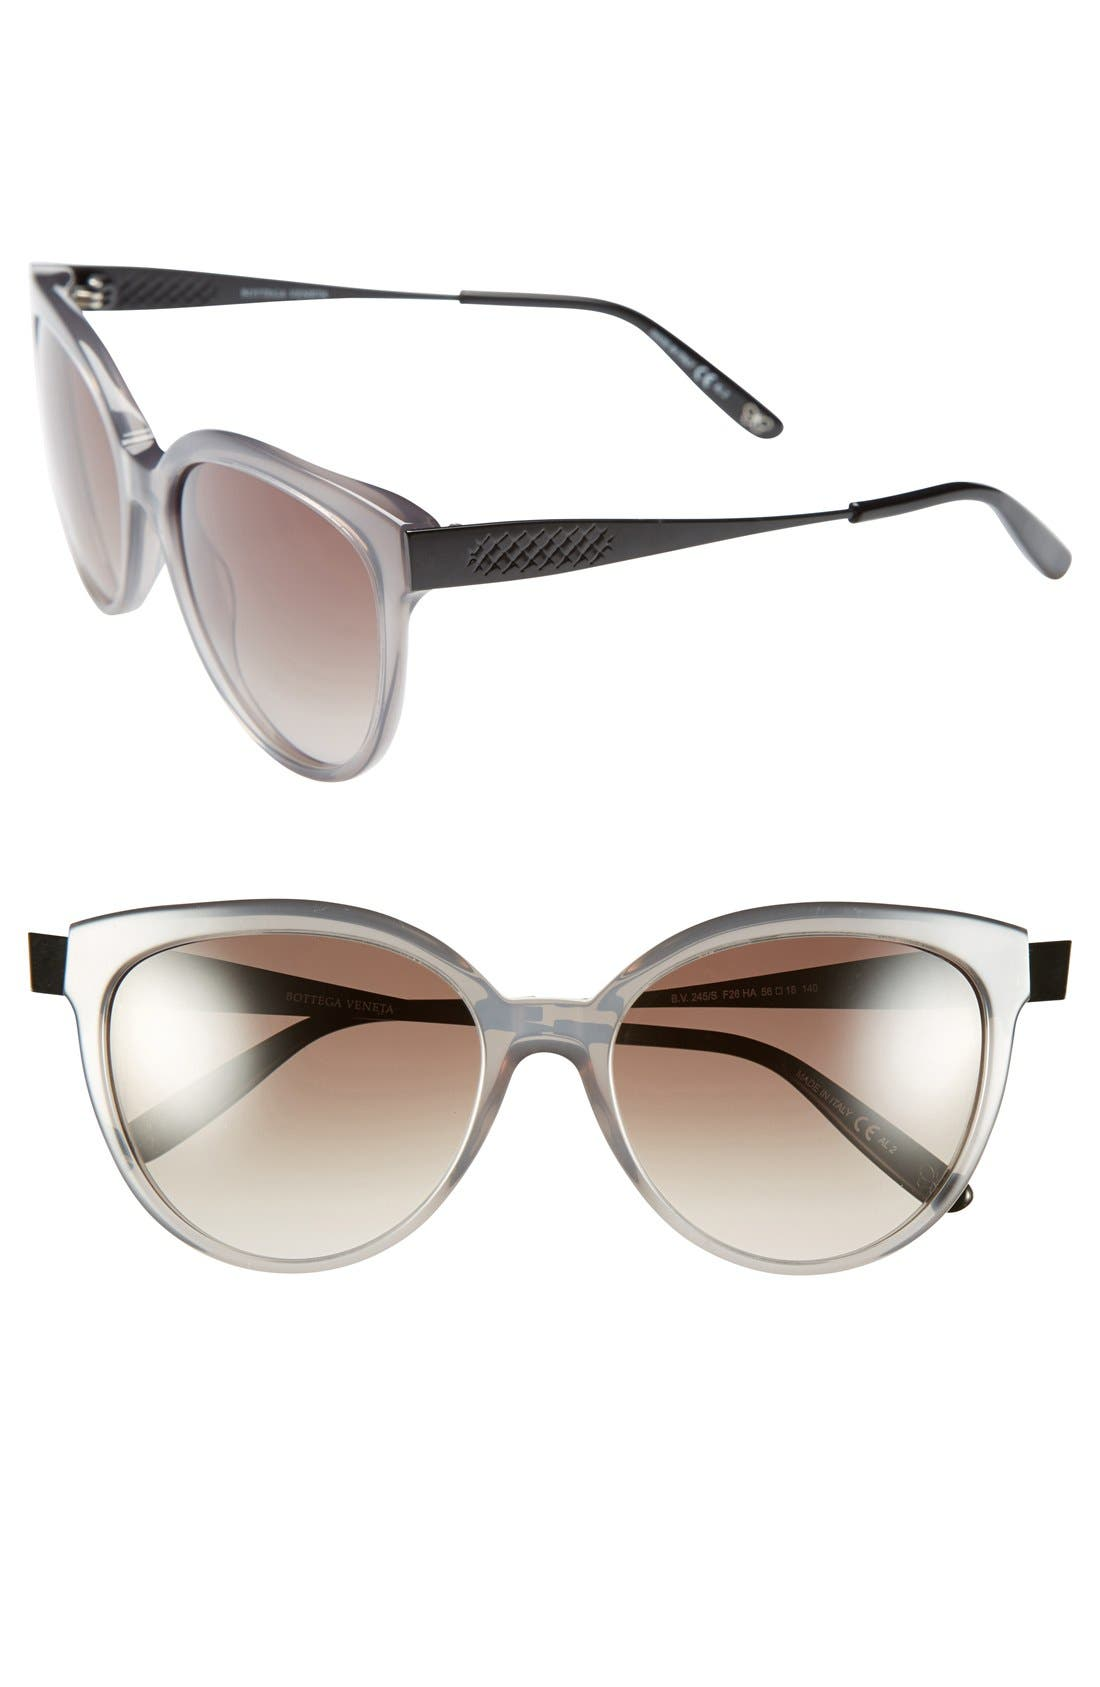 Alternate Image 1 Selected - Bottega Veneta 56mm Retro Sunglasses